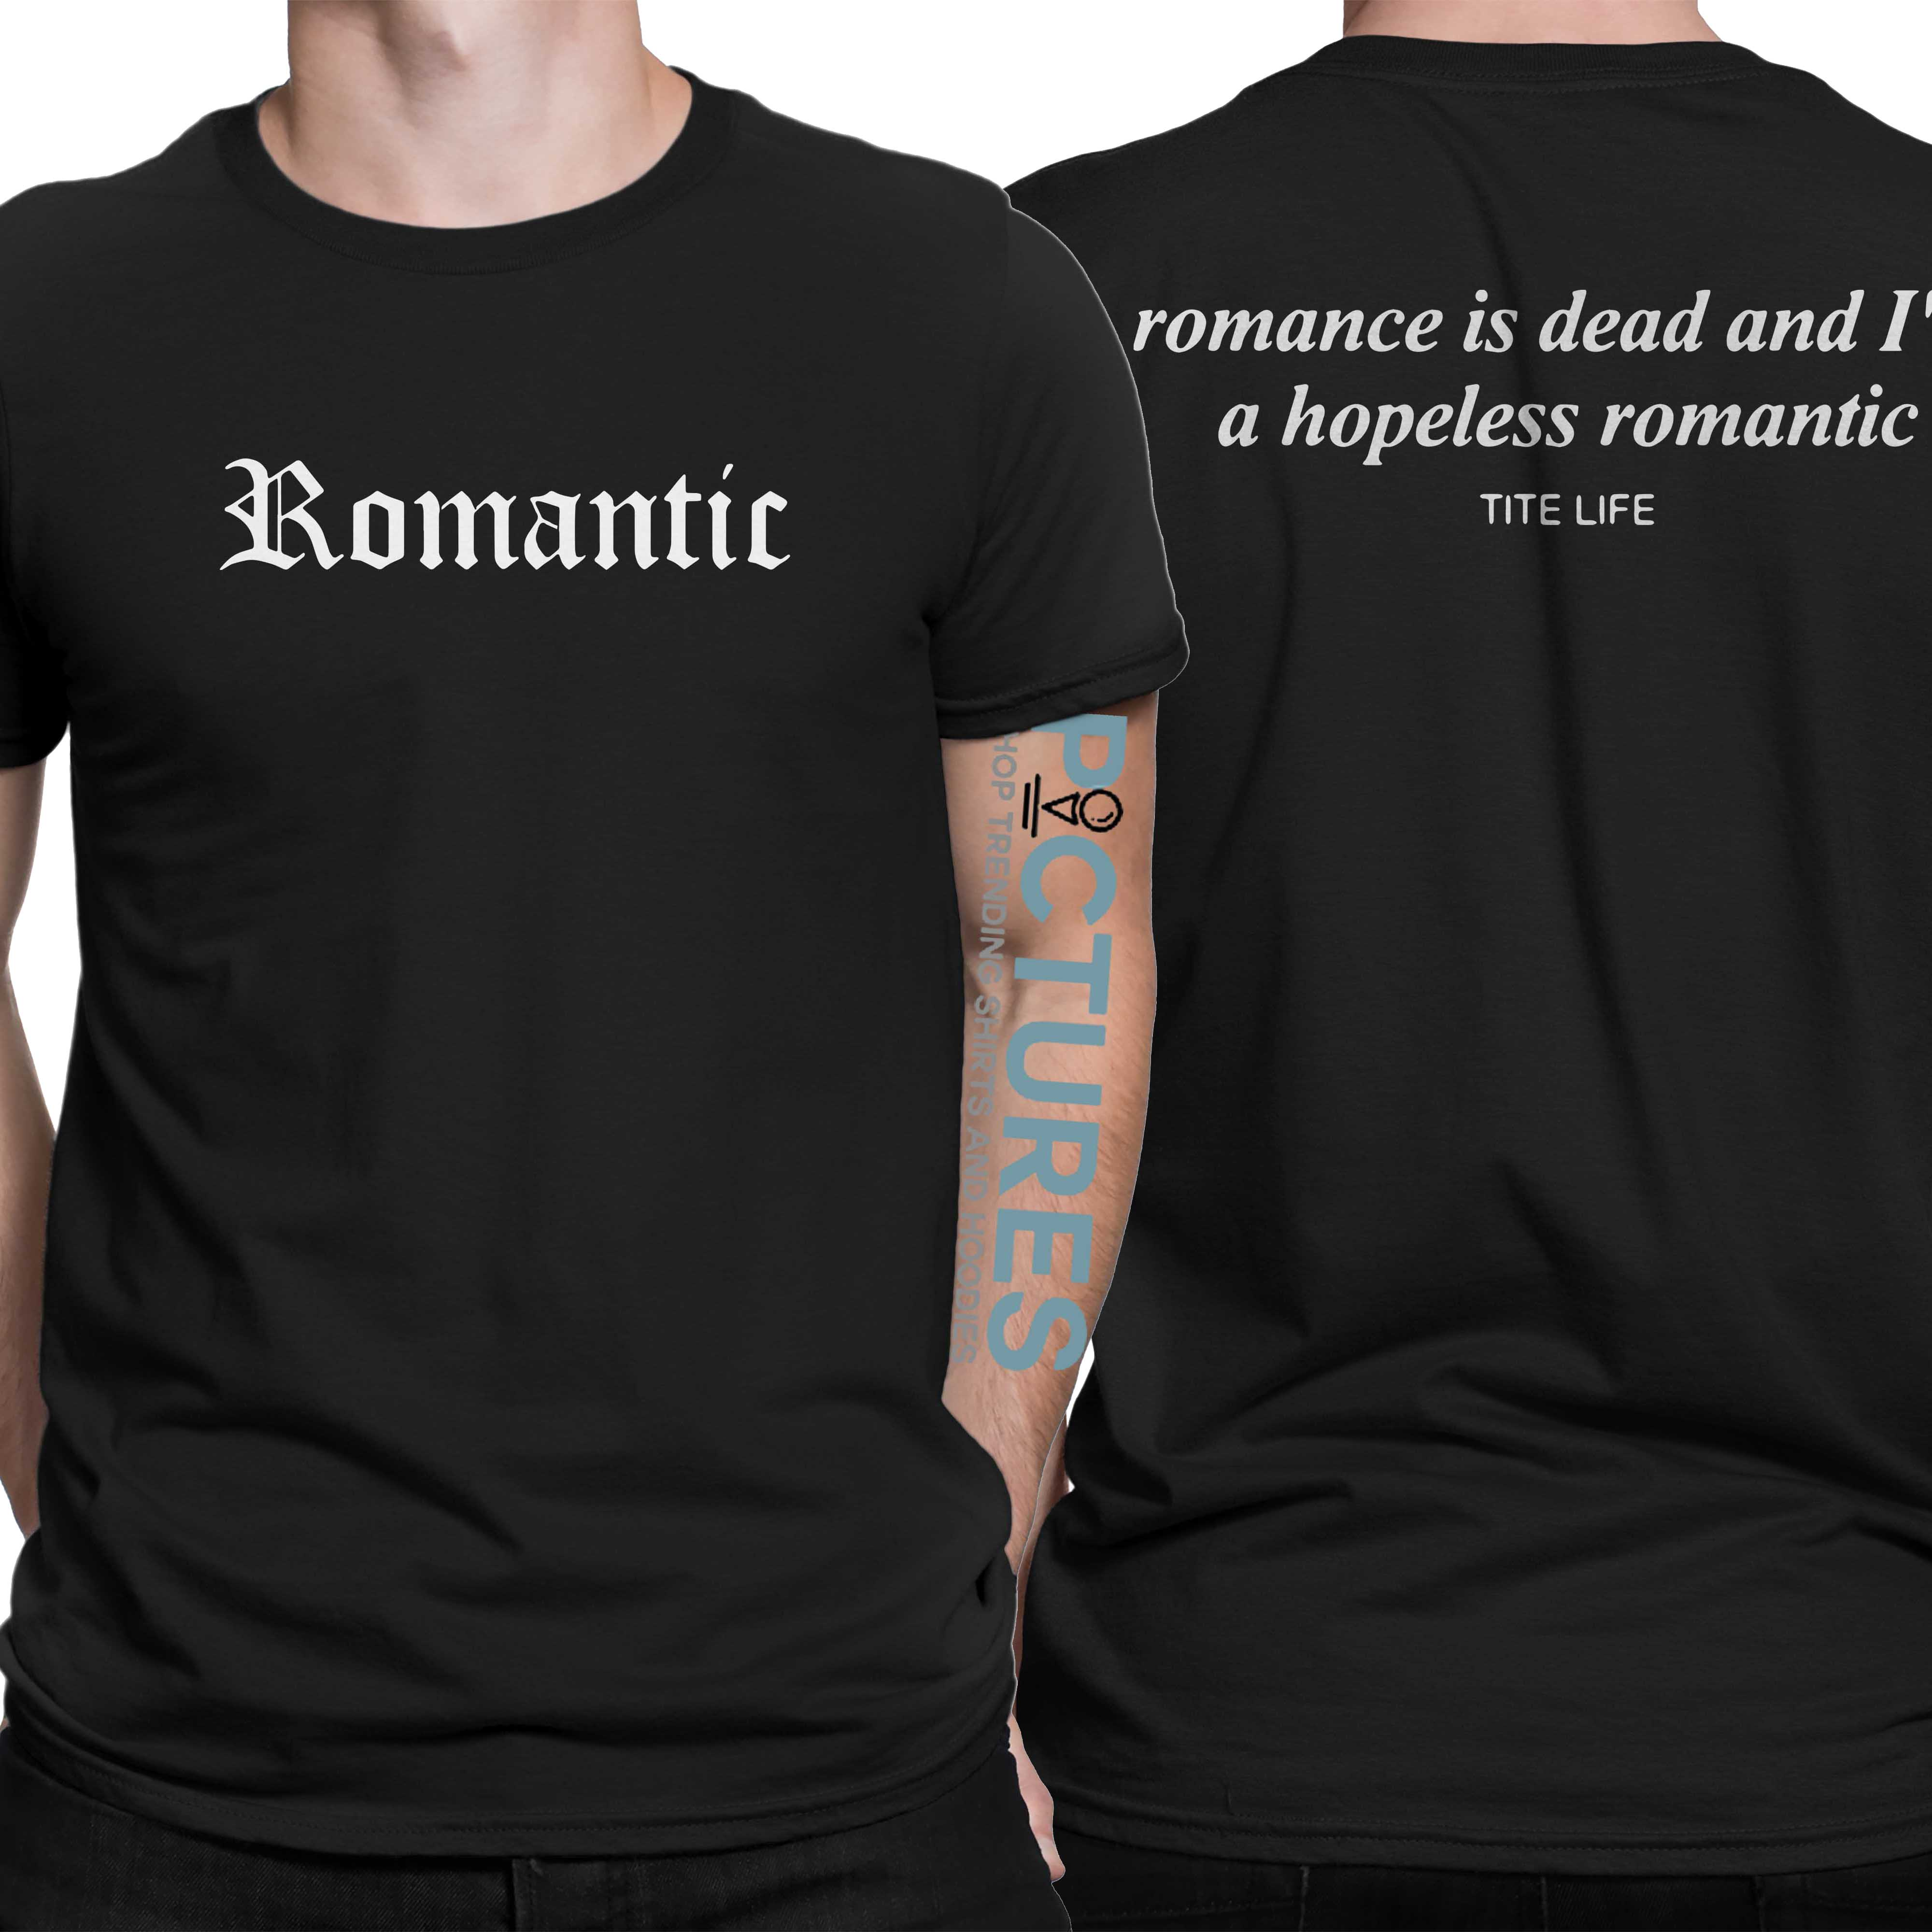 Romance is dead and I'm a hopeless romantic shirt